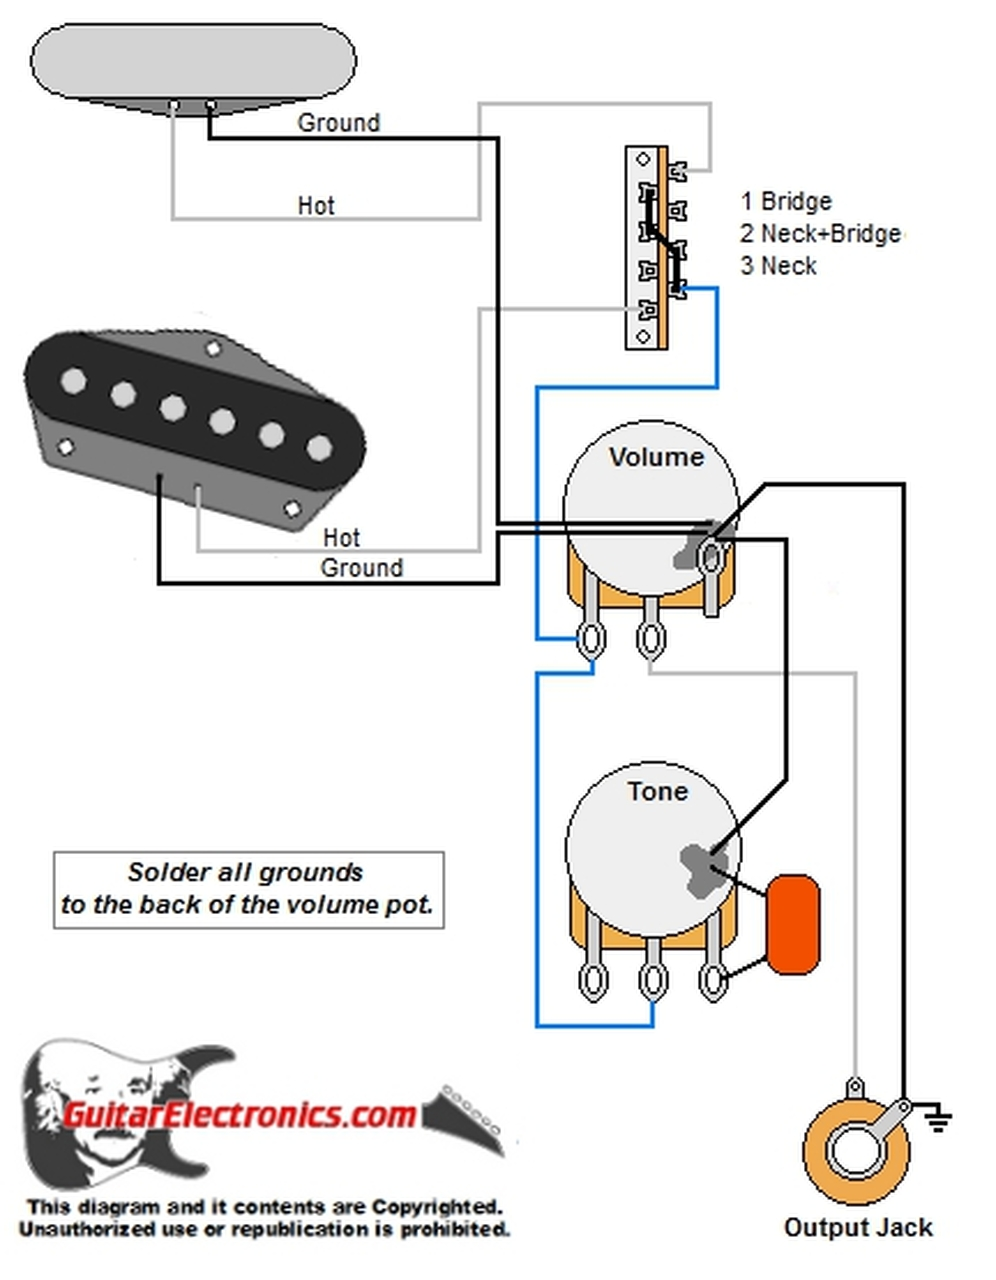 [CSDW_4250]   Tele Style Guitar Wiring Diagram | Fender Pot Wiring Diagram 2 |  | Guitar Electronics